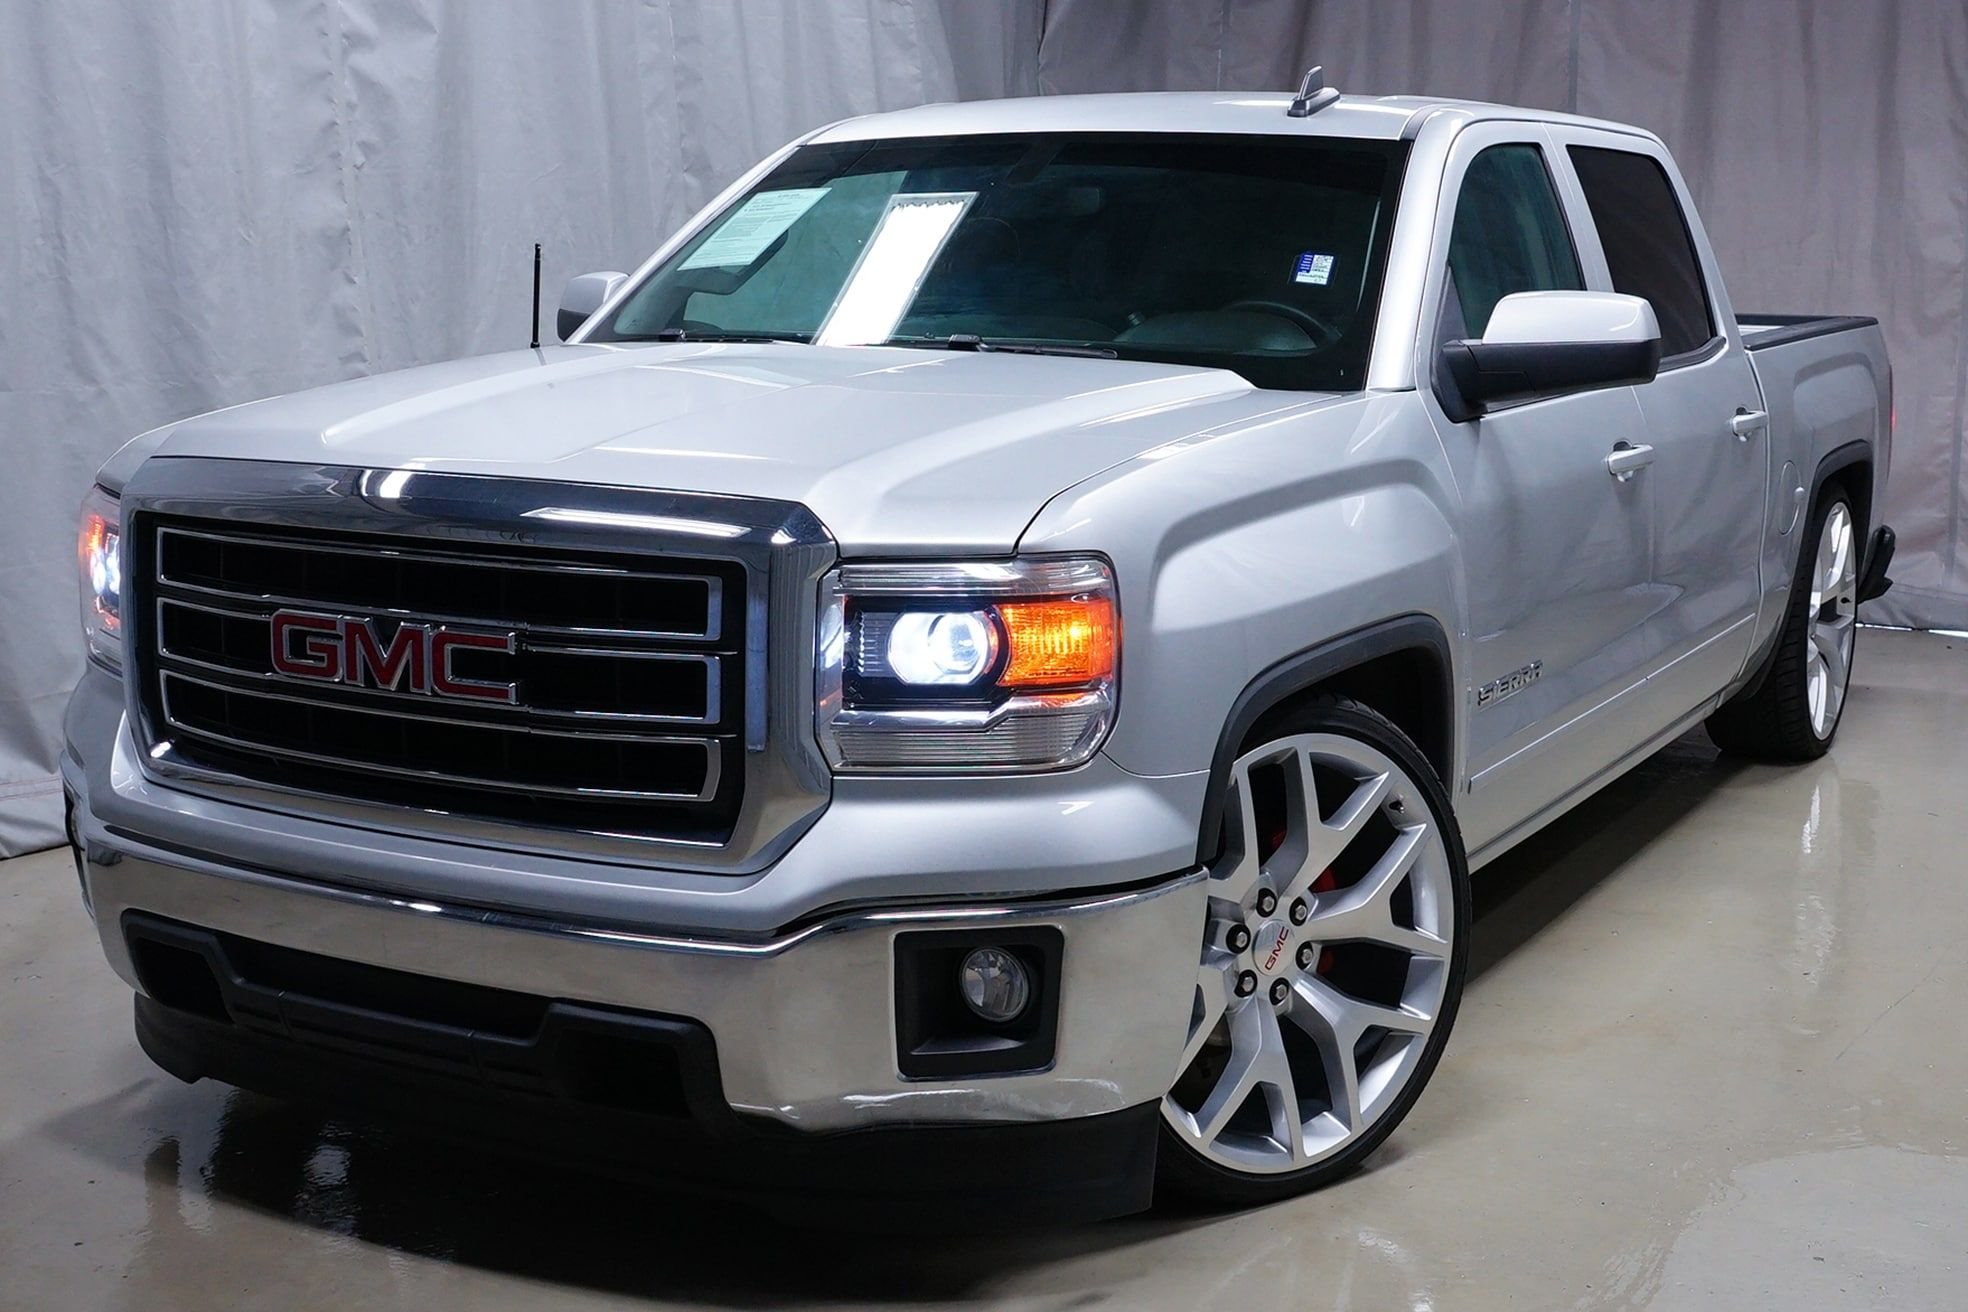 Custom Lowered One Owner Free Carfax 2015 Gmc Sierra 1500 Sle For Sale At Fincher S Texas Best Auto Truck Sales Located Gmc Sierra 1500 Gmc Sierra Gmc